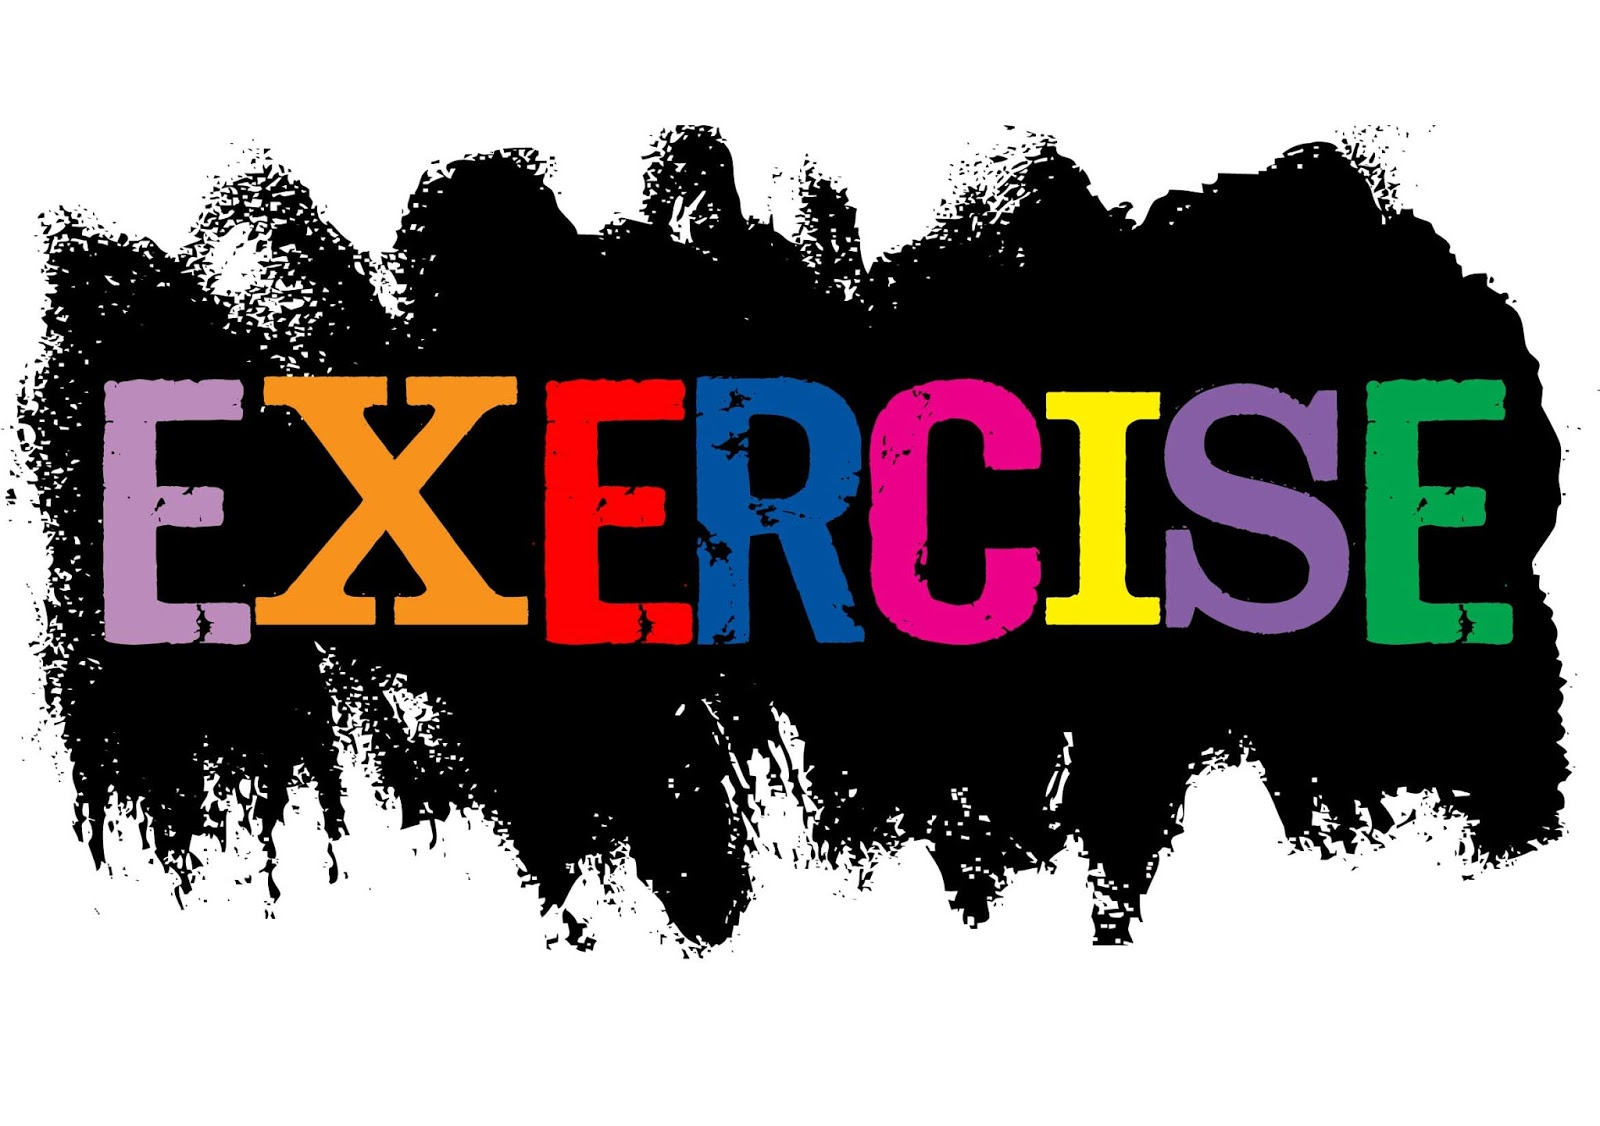 essay on the importance of exercise for good health exercise